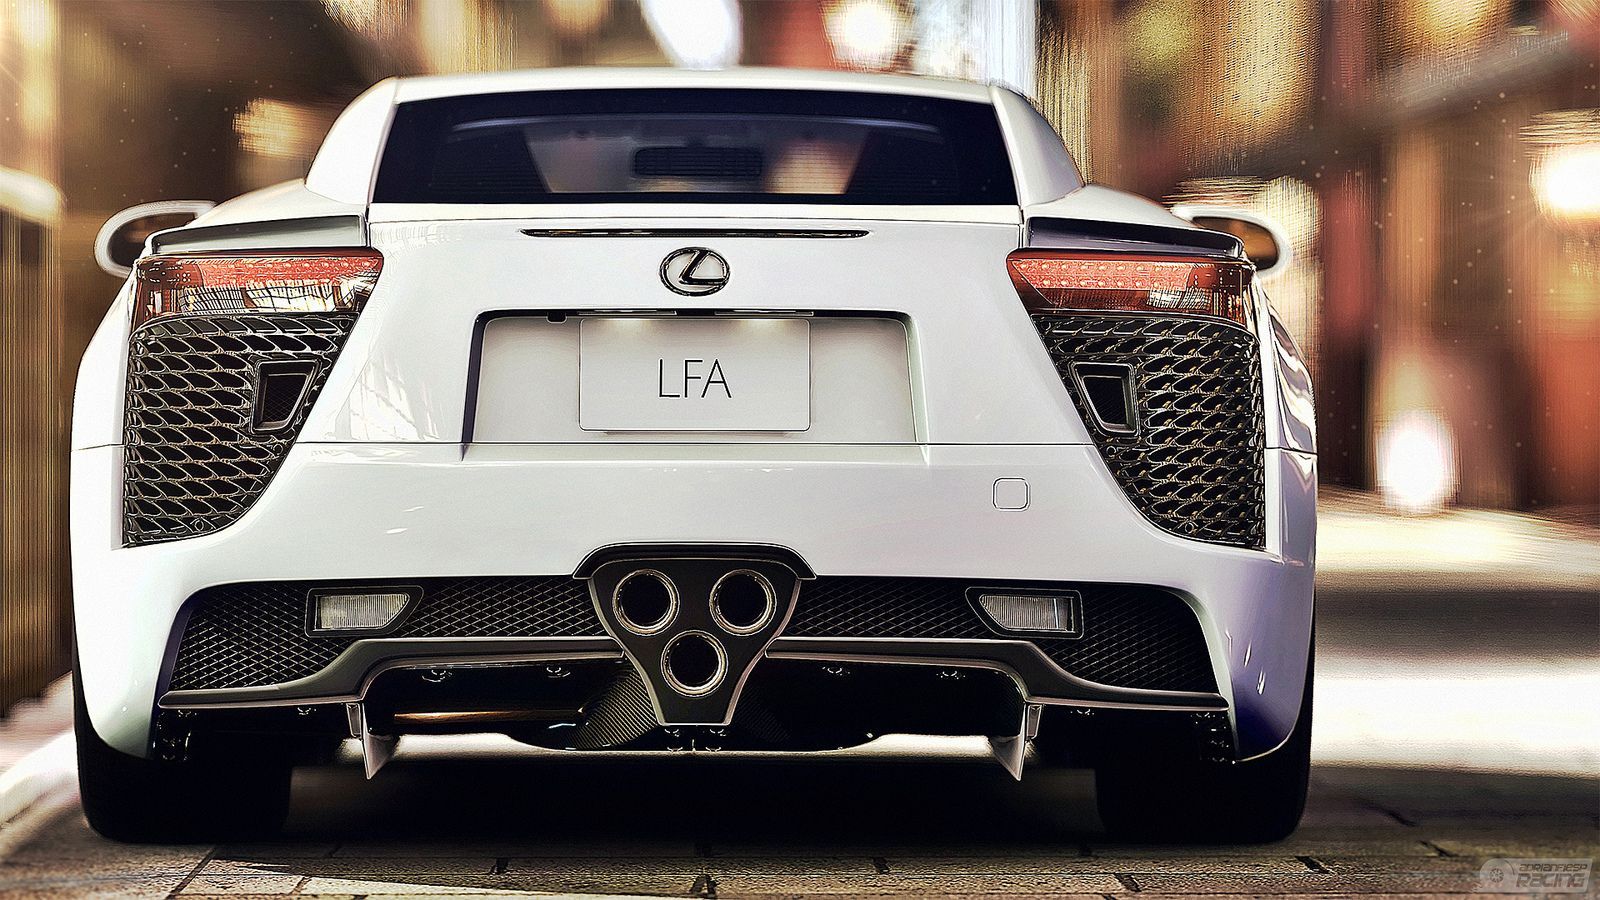 Lexus Lfa Rain Race Hd Wallpaper Free Download Lexus Lexus Lfa